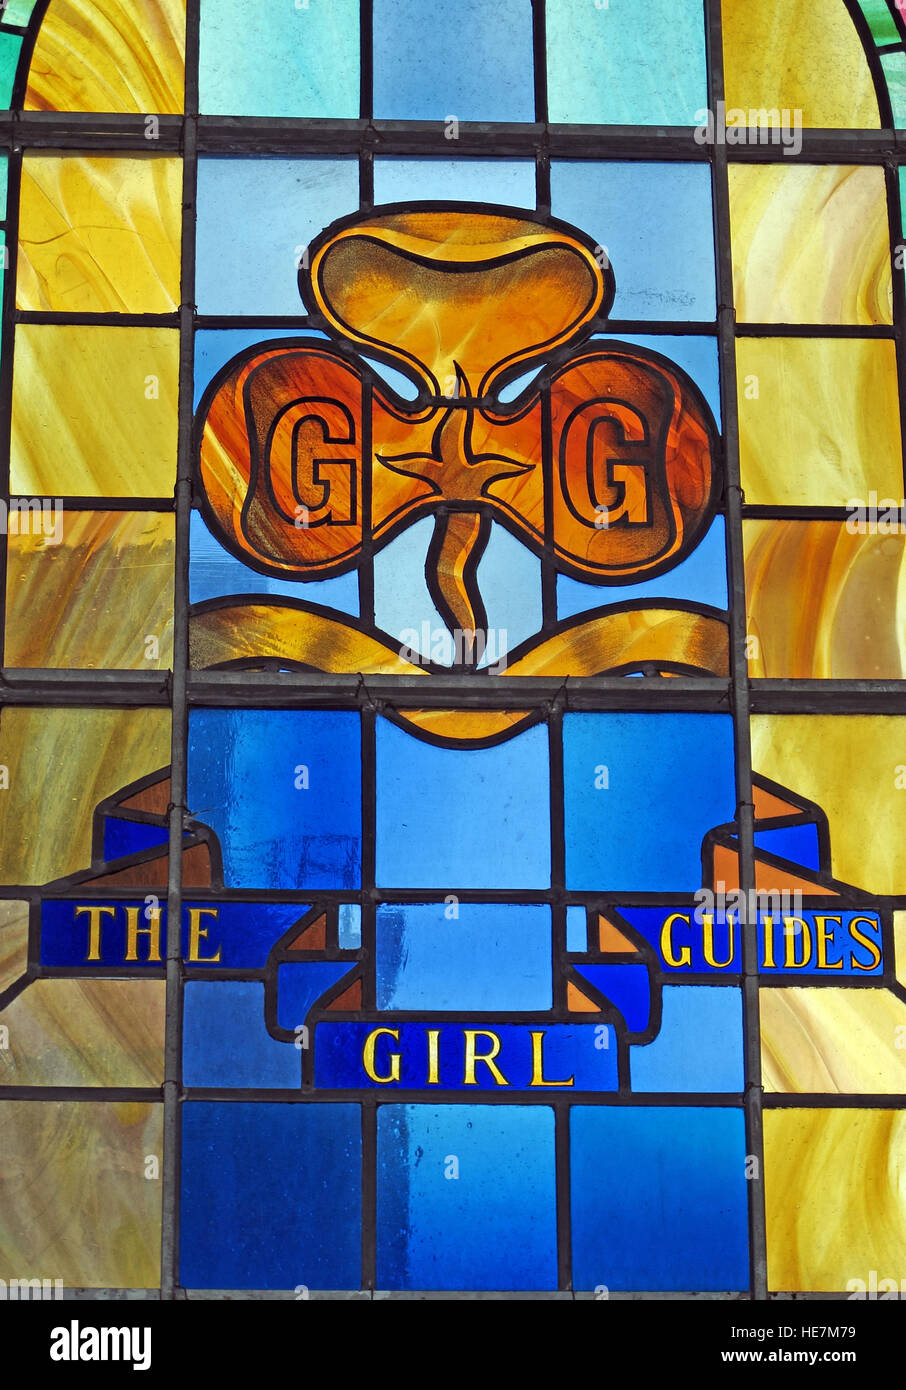 St Annes Belfast Cathedral Interior,The girl guides,stained glass window - Stock Image